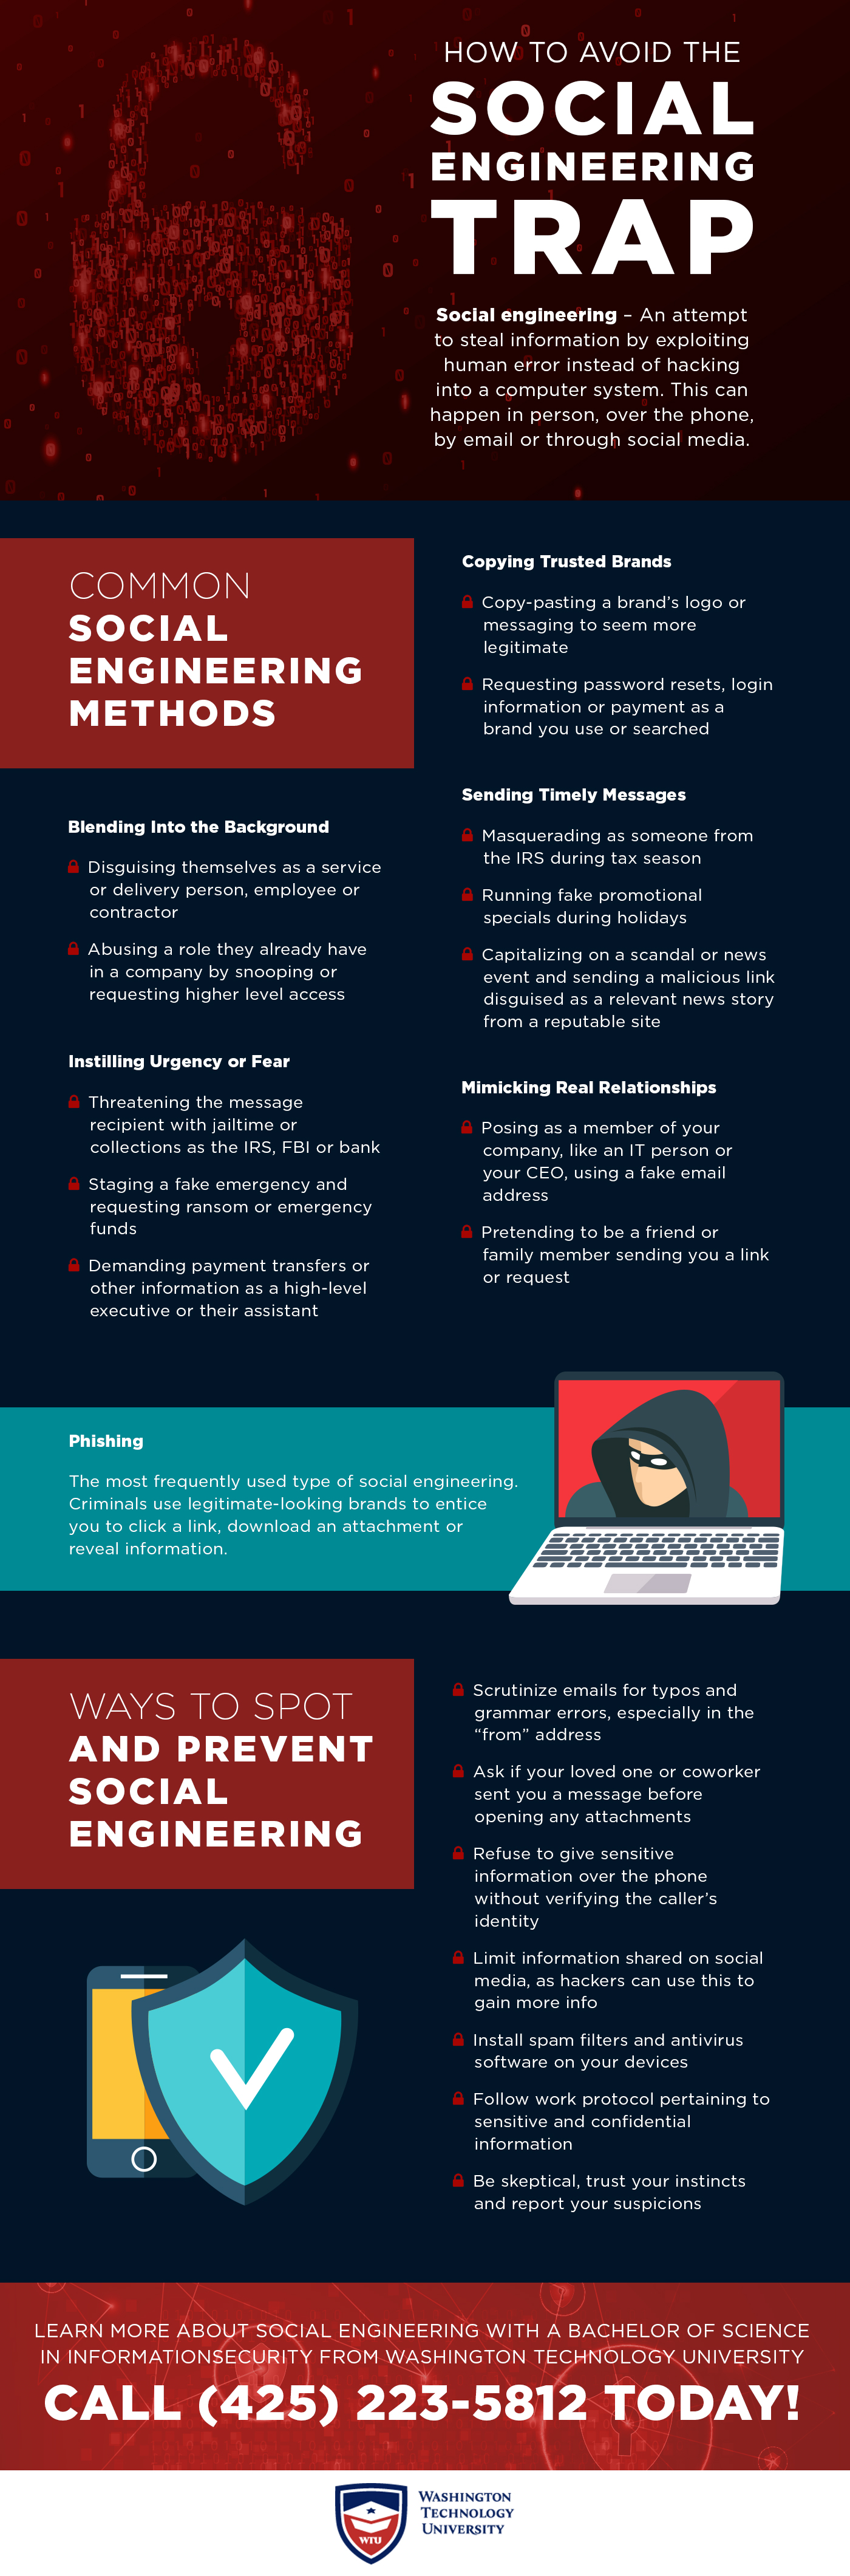 Washington Technology University - Infographic - Social Engineering